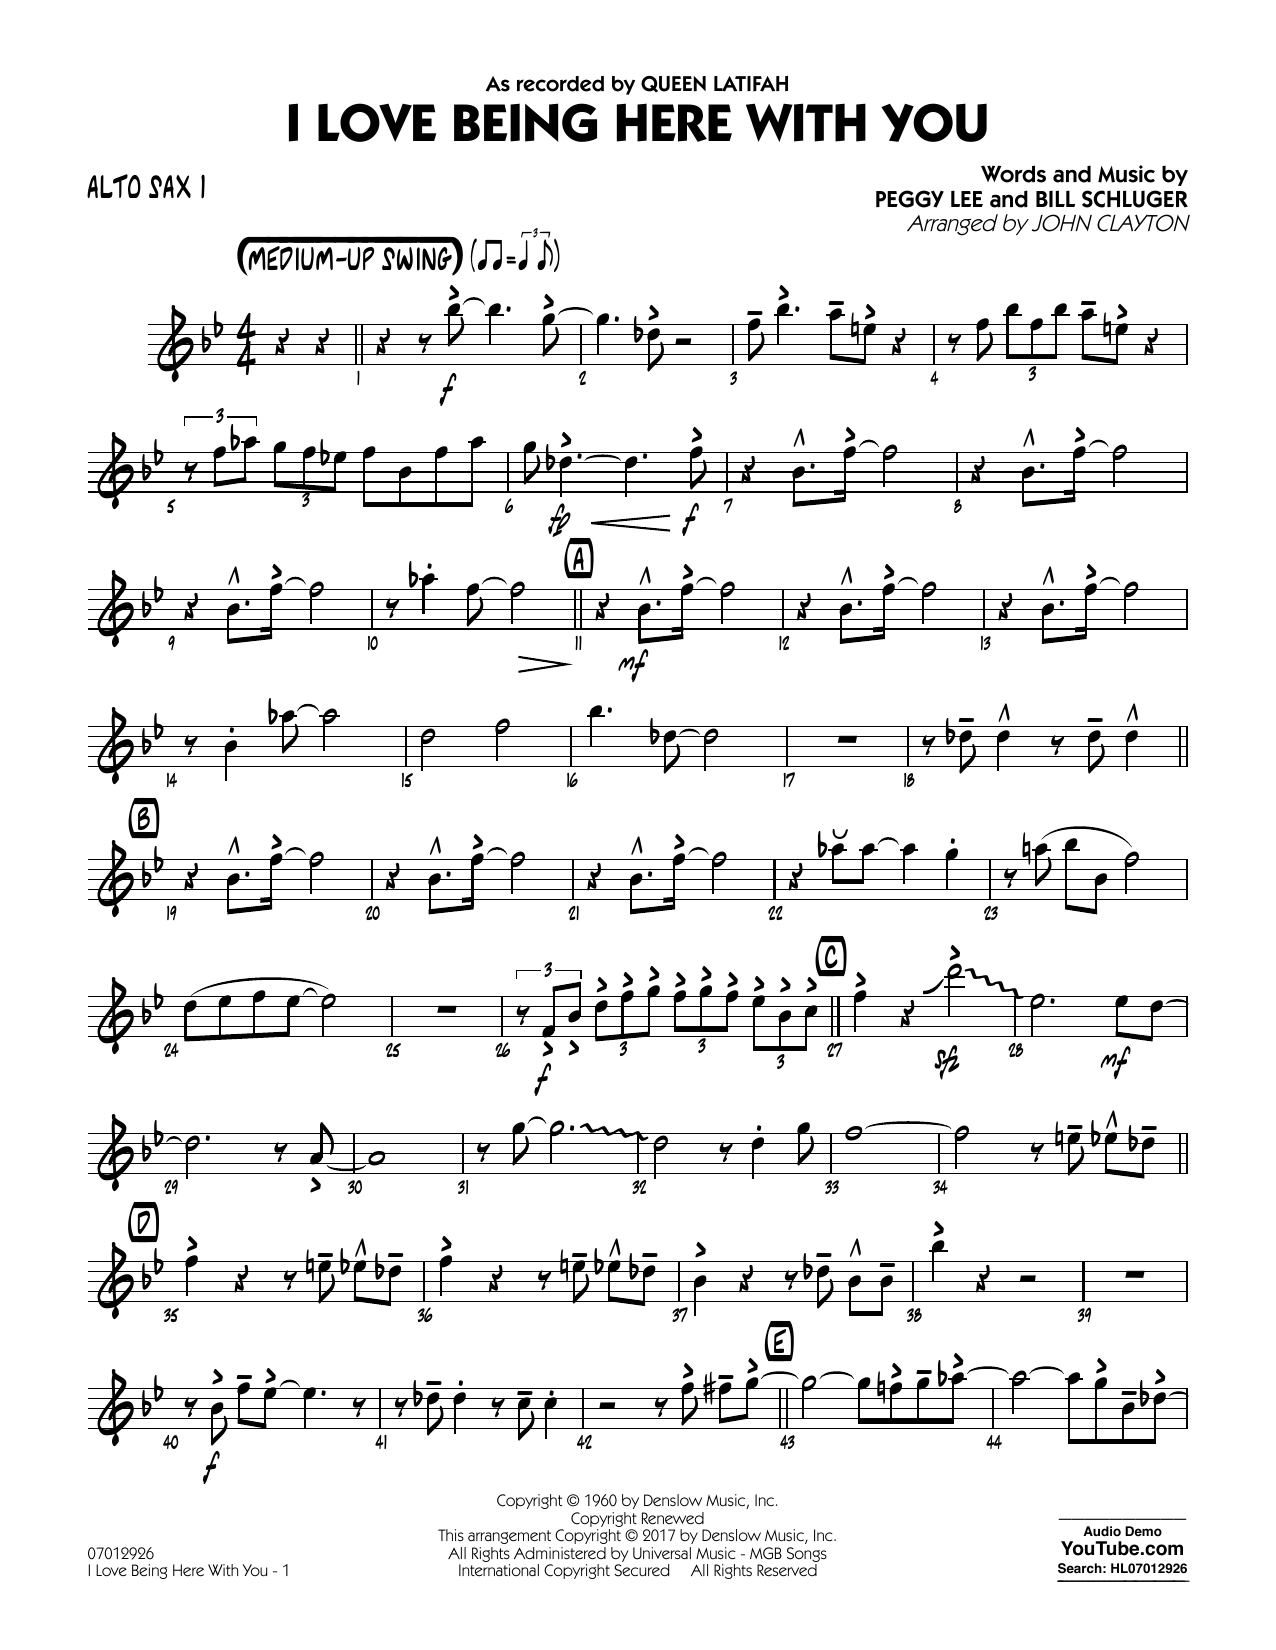 John Clayton I Love Being Here with You (Key: Db) - Alto Sax 1 sheet music notes and chords. Download Printable PDF.